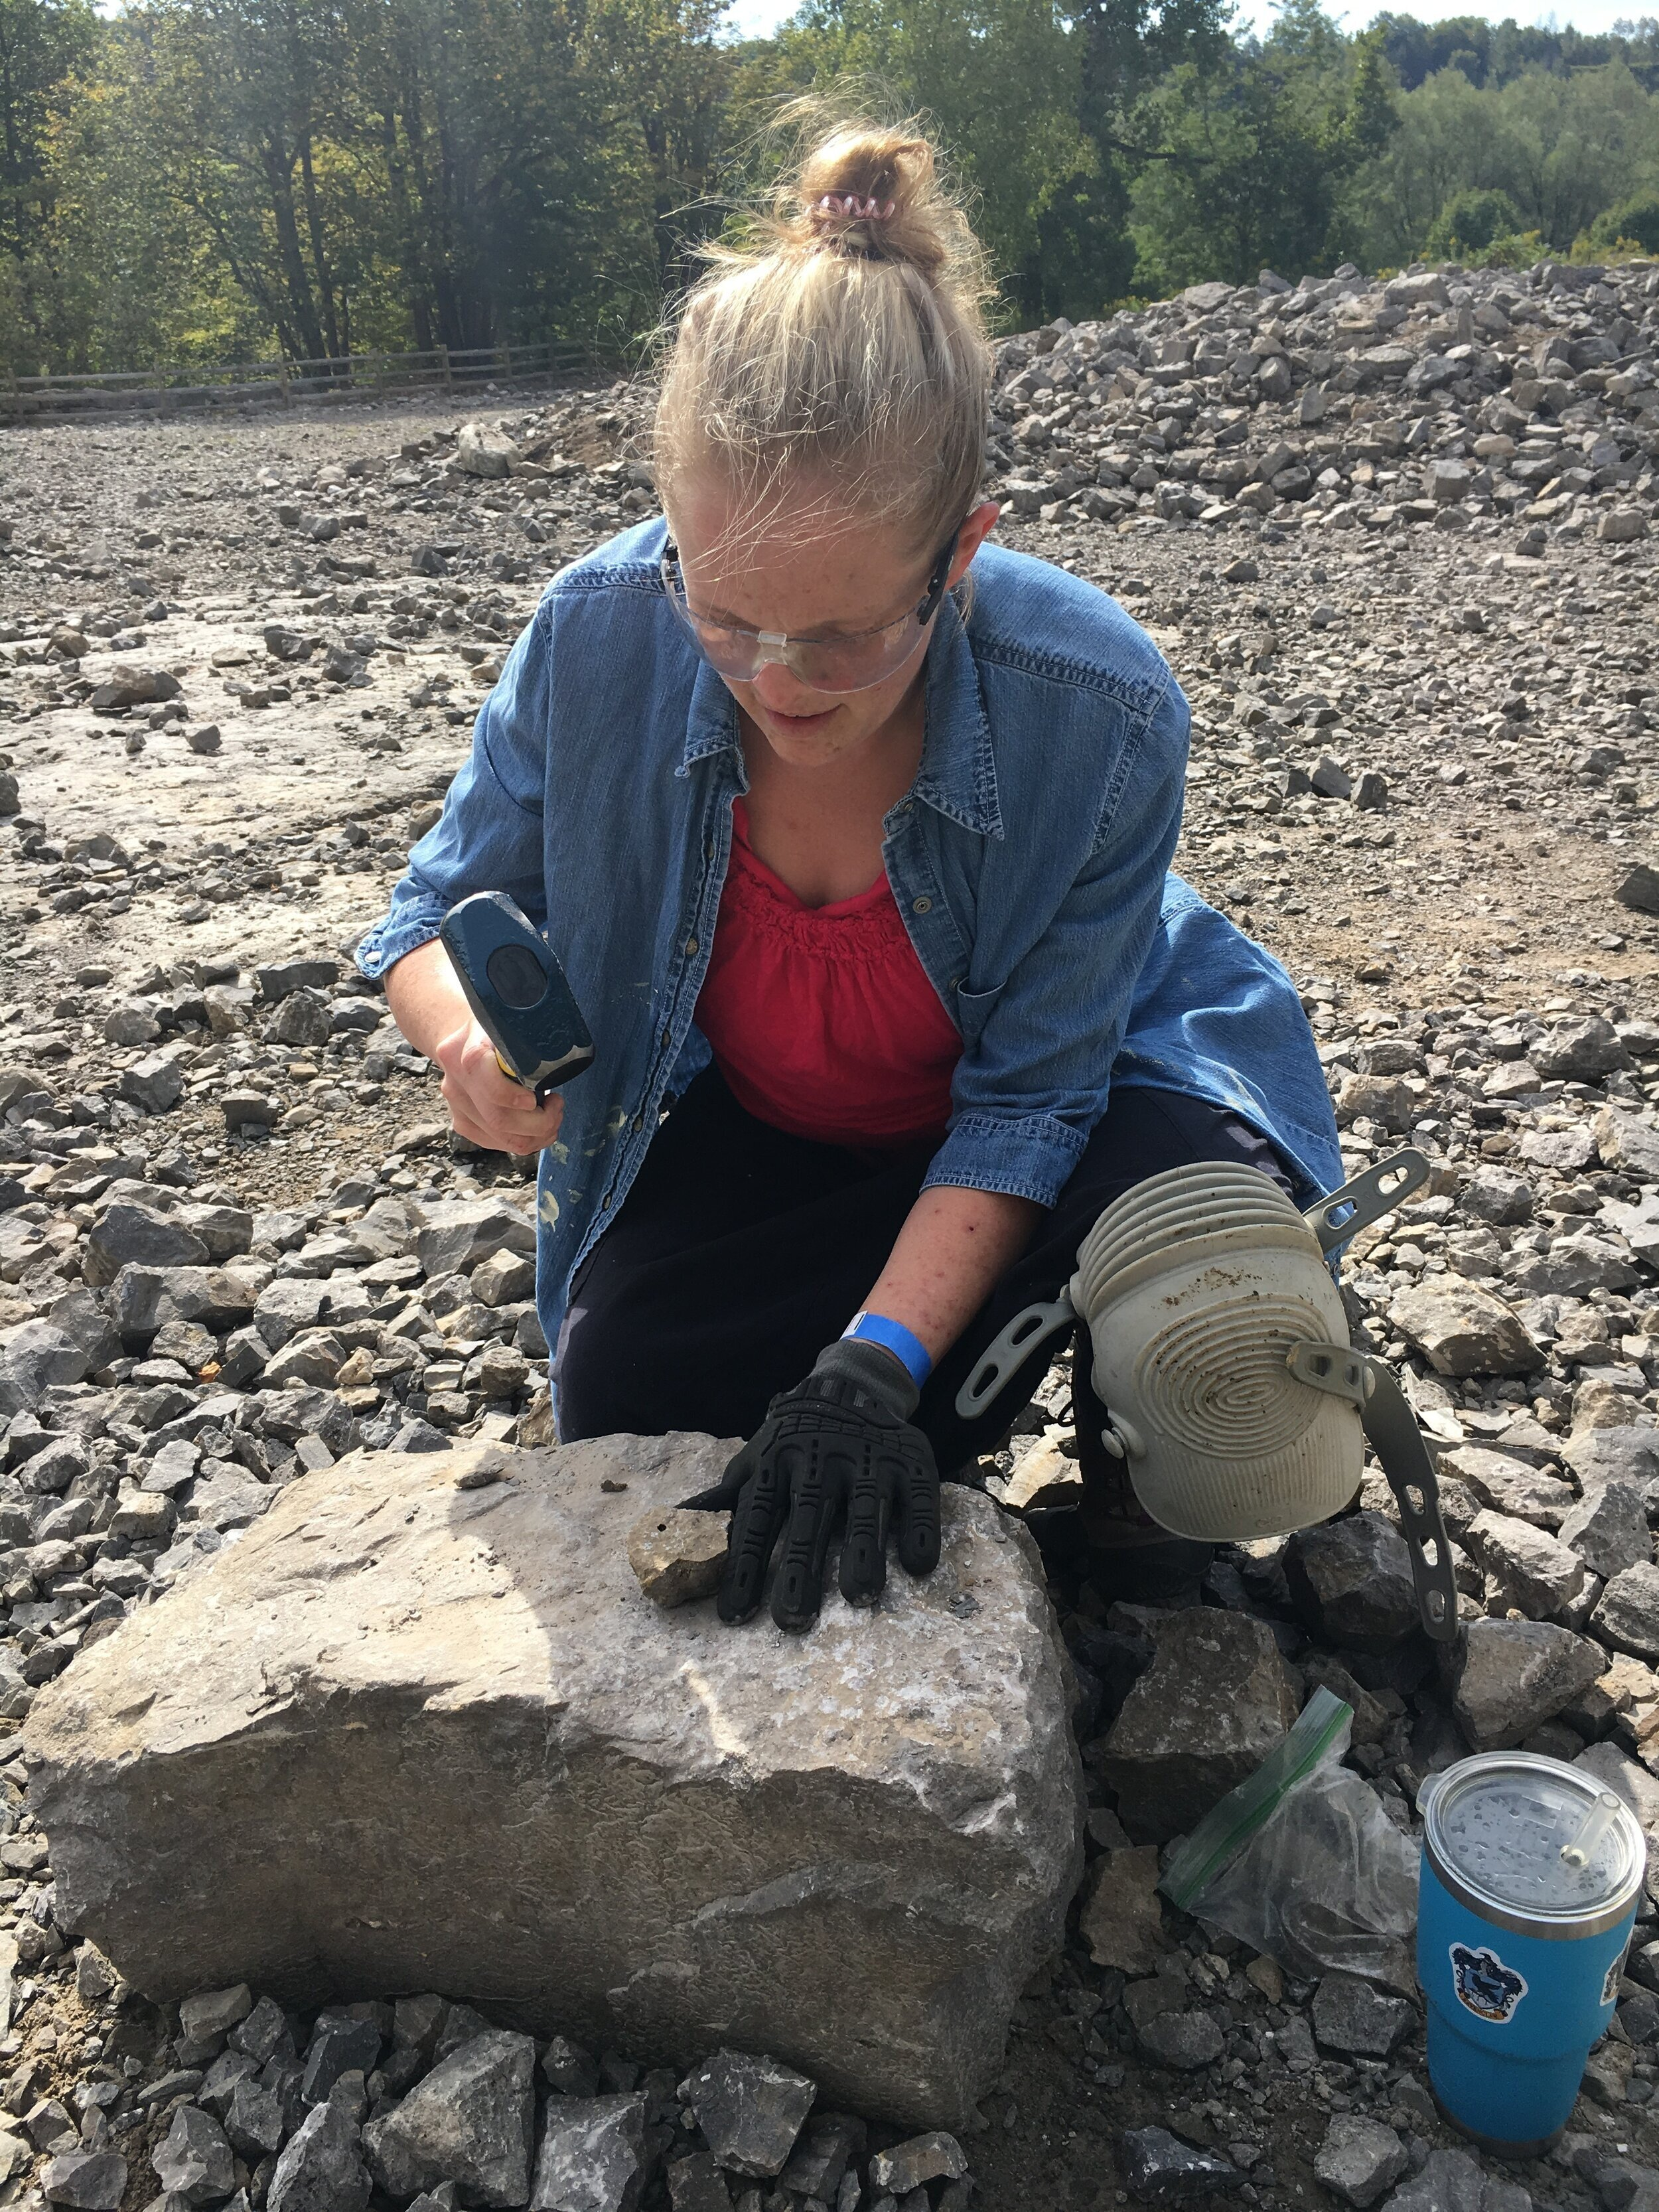 Jewelry artist Valerie Heck Esmont uses the find and break method to prospect for Herkimer Diamonds at the World-Famous Herkimer Diamond Mines in Herkimer County, New York. Photo credit: Michelle Pajak-Reynolds